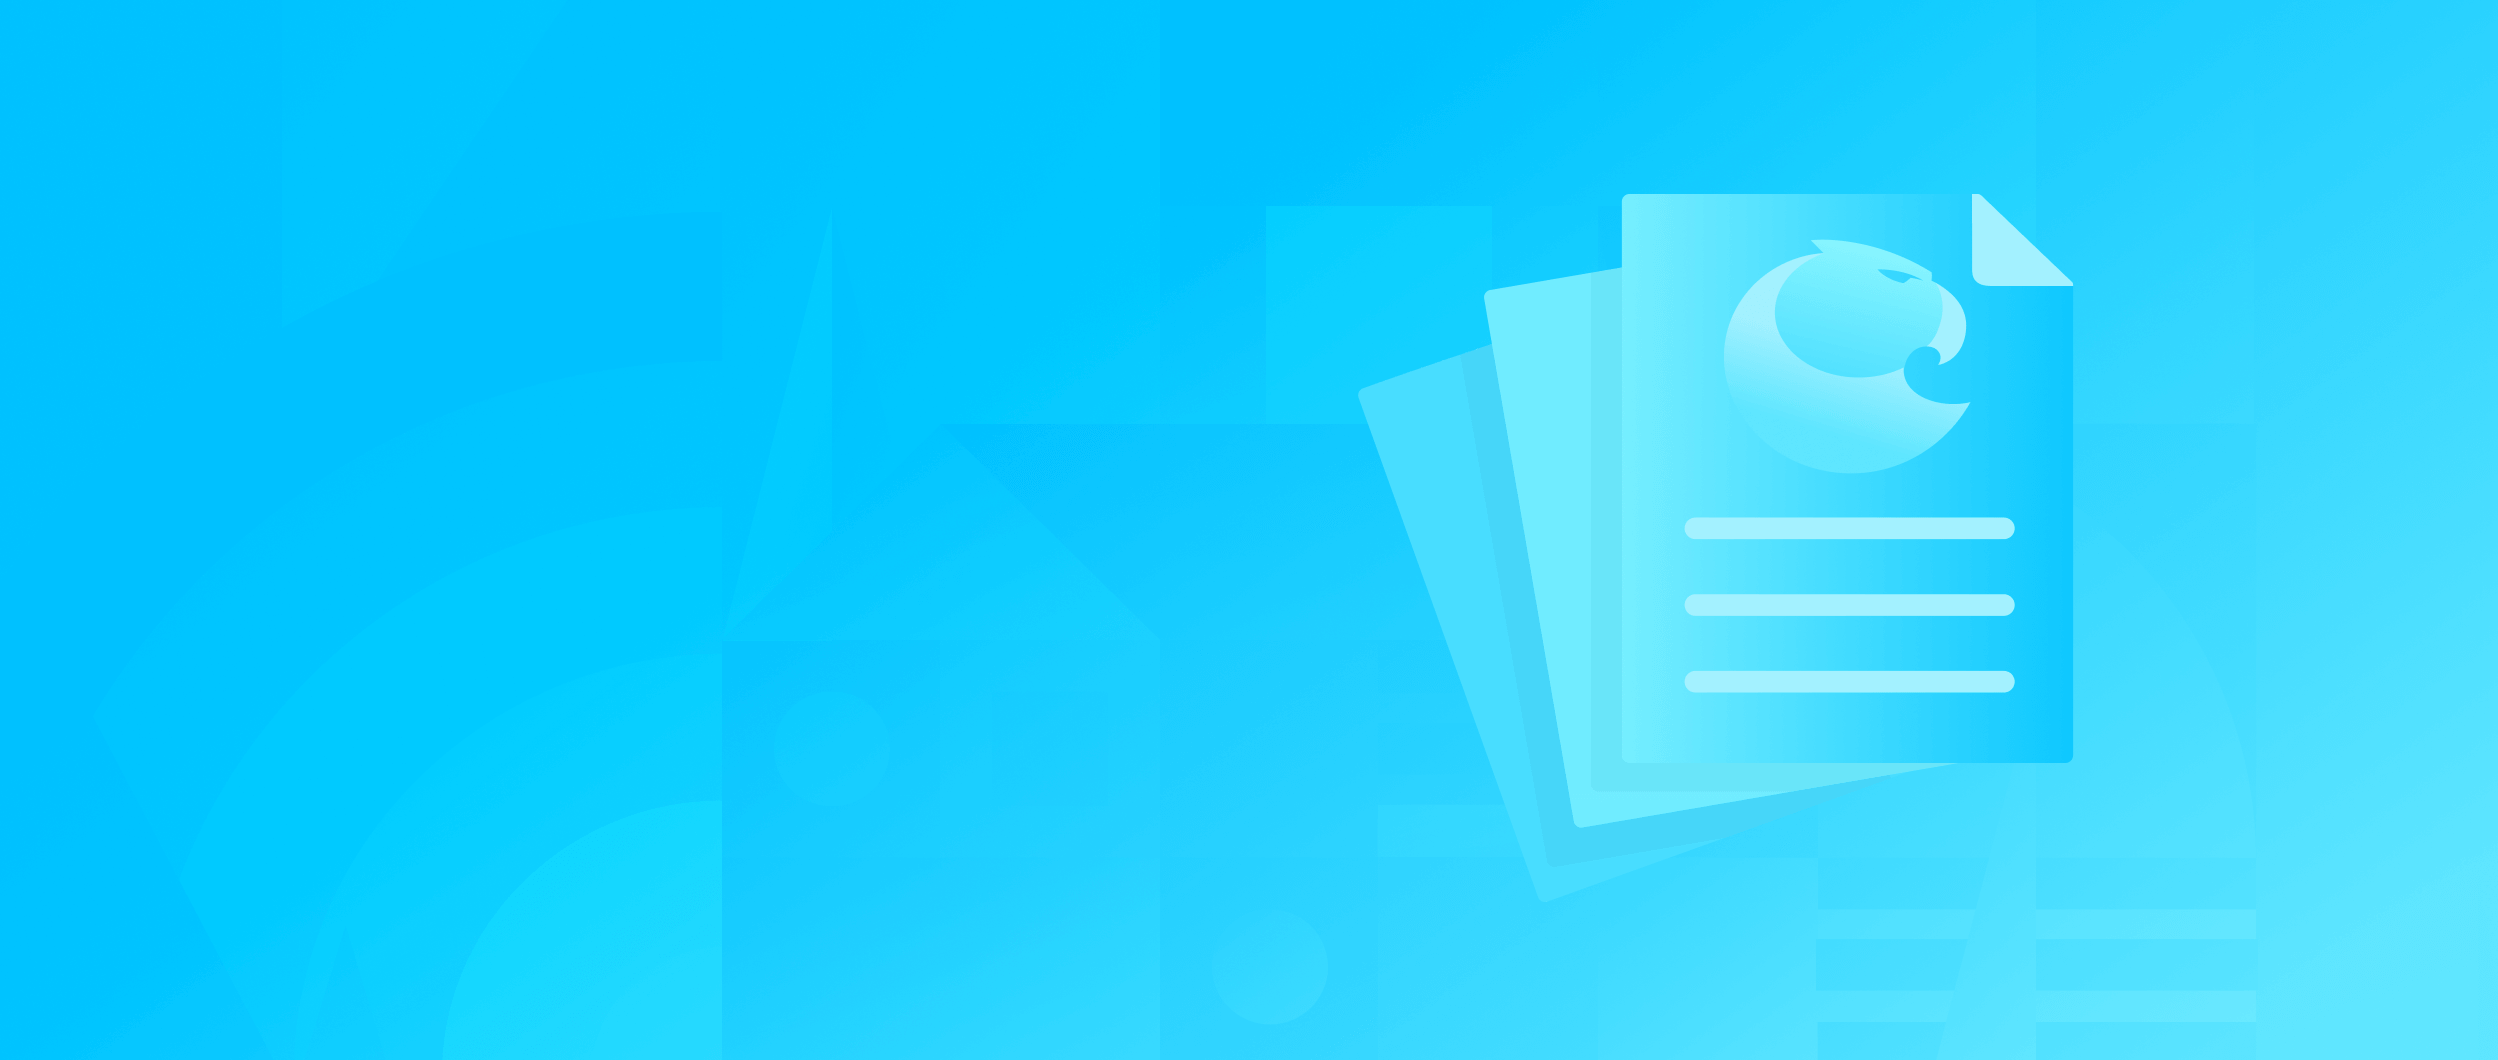 Introducing the Aragon Network Agreement